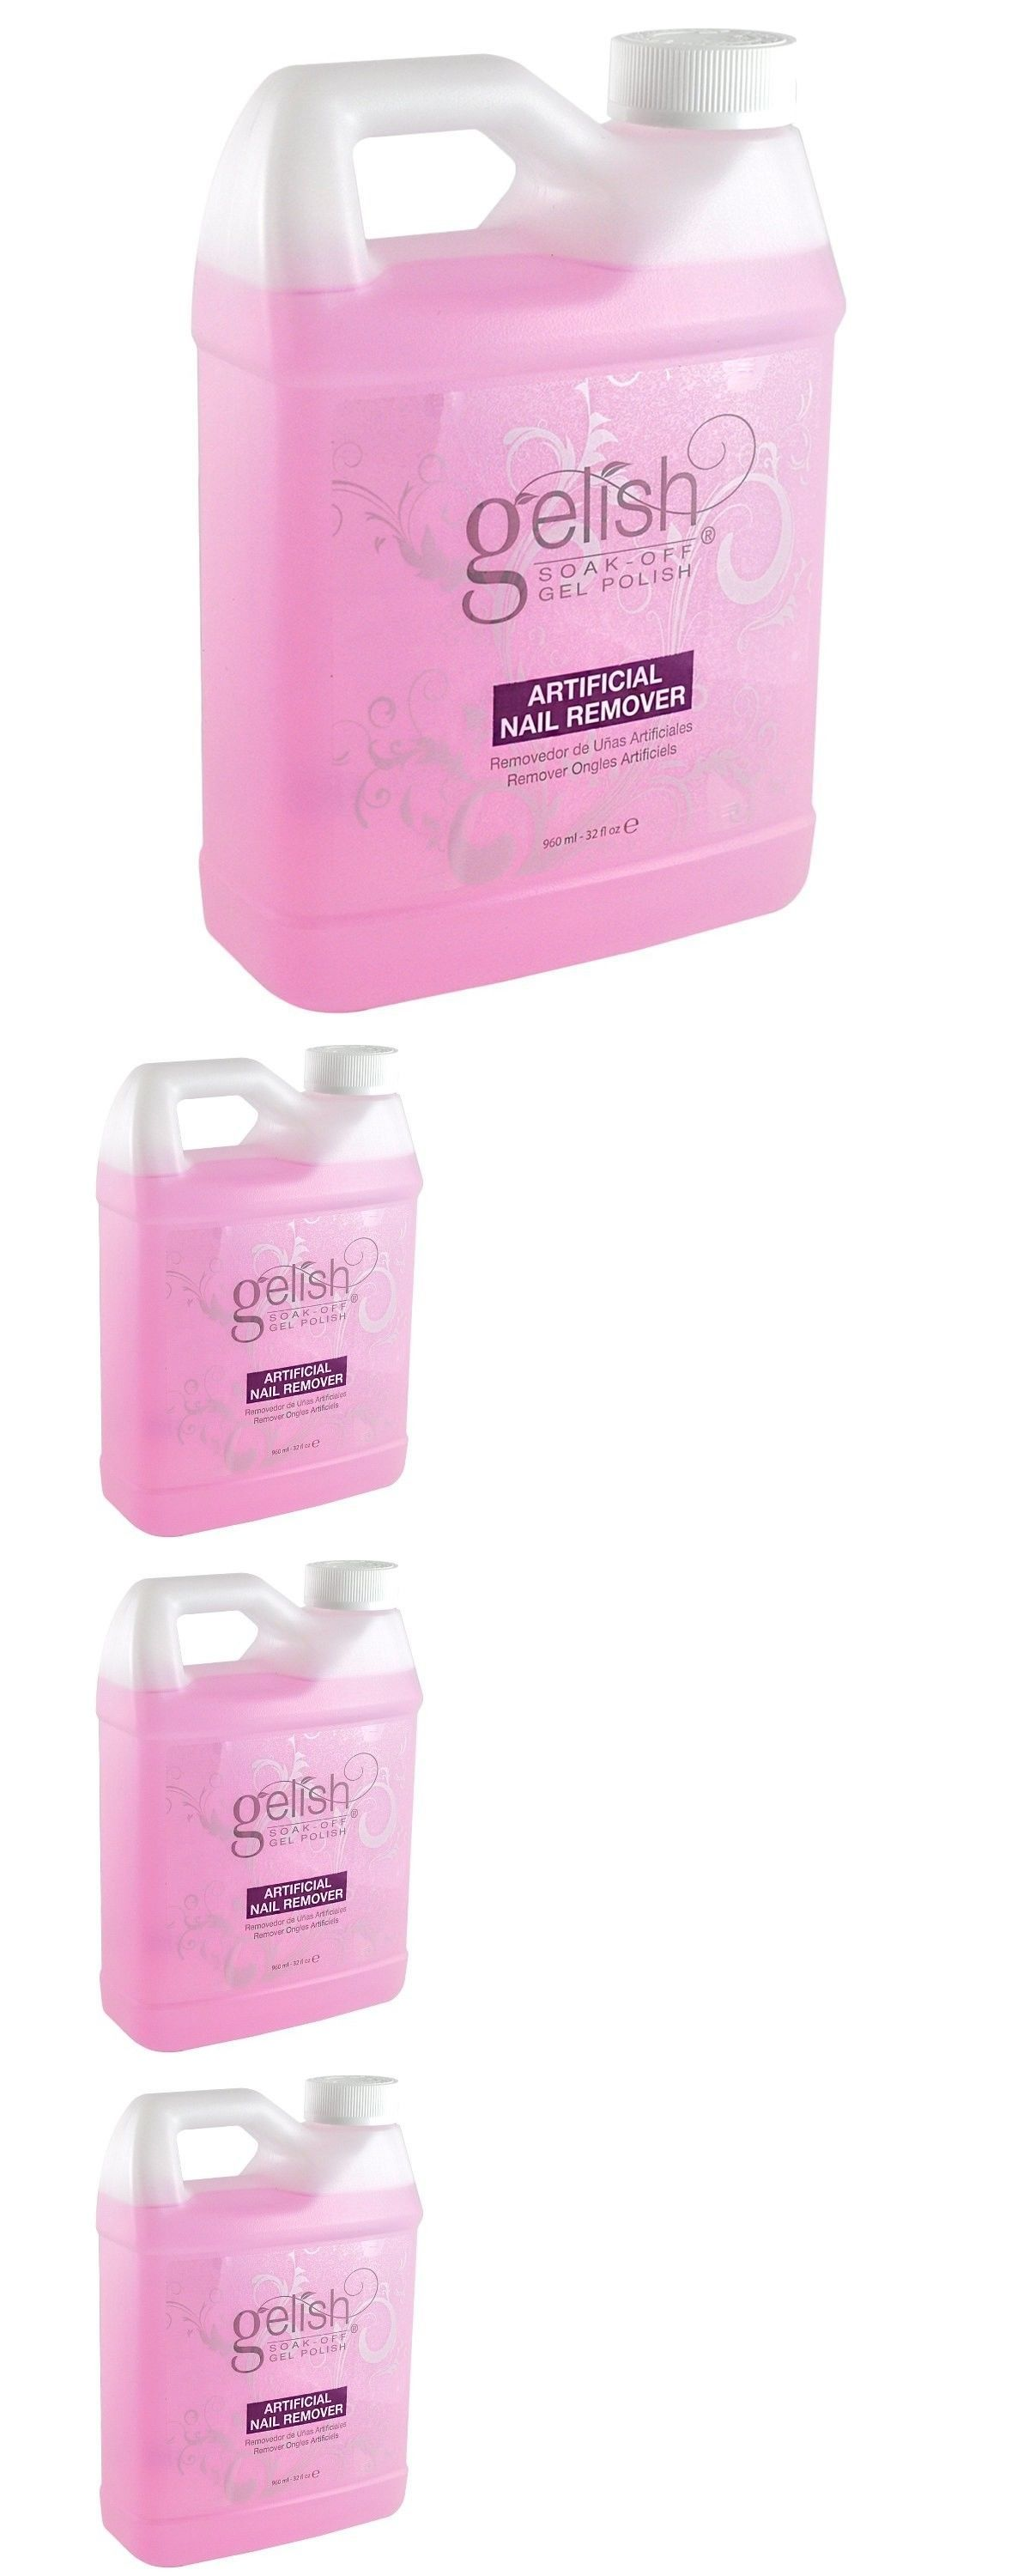 Nail Polish Remover: Gelish Artificial Nail Remover Ideal To Remove ...